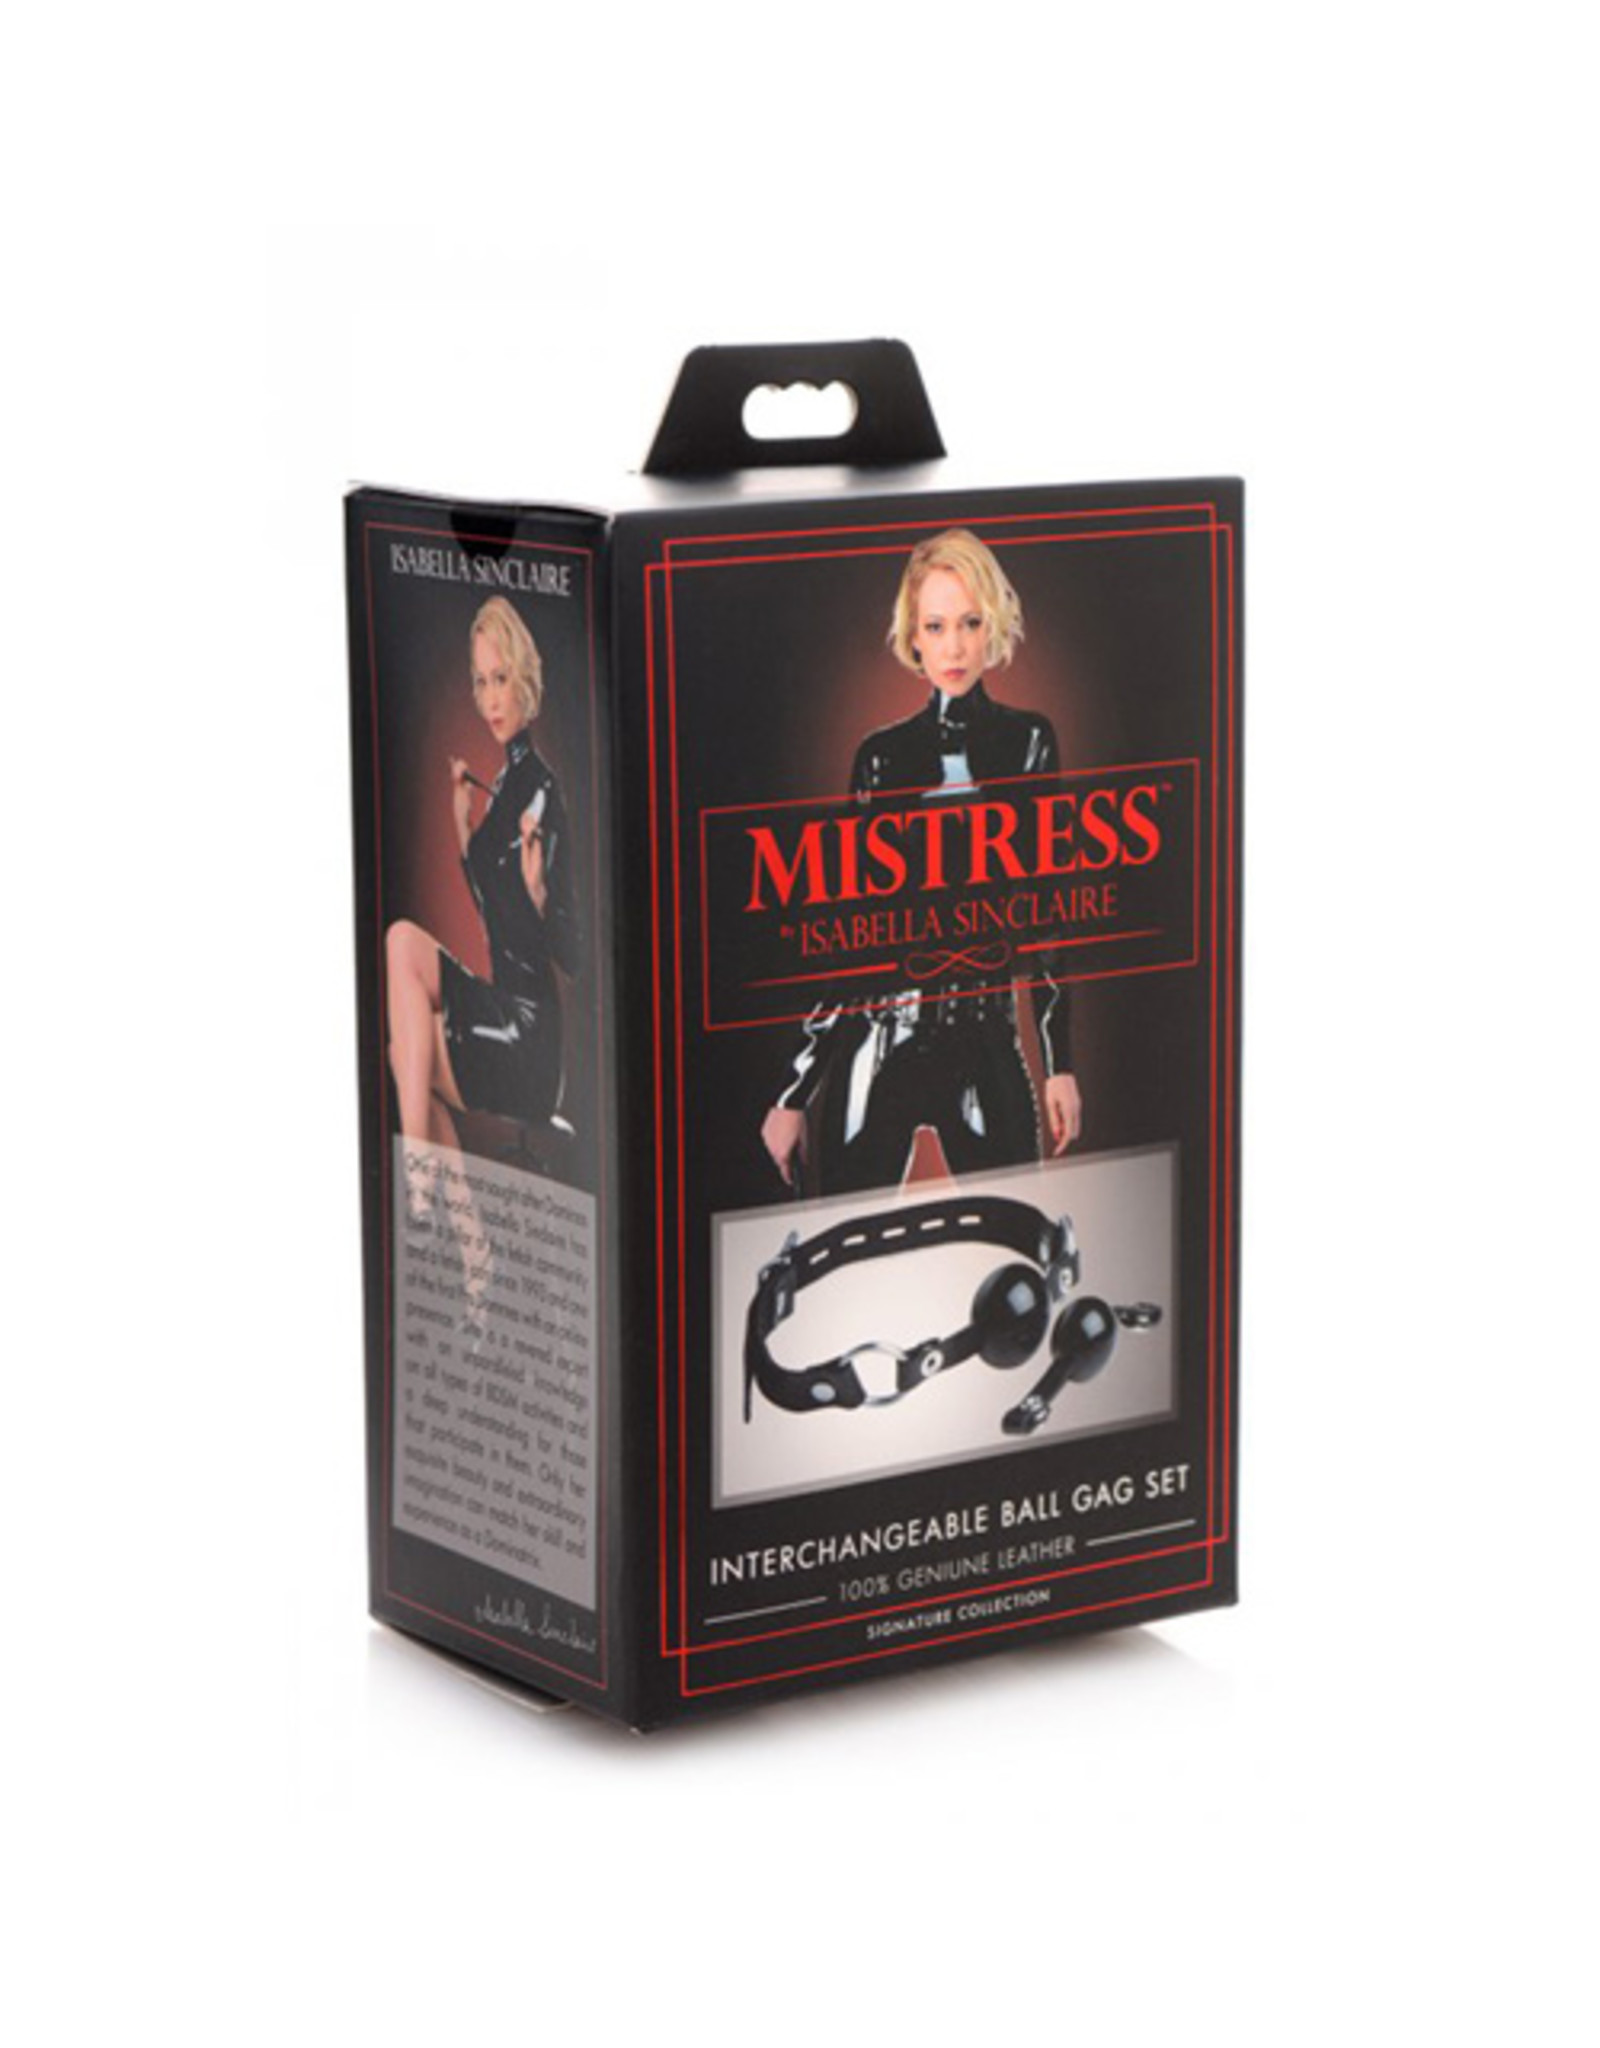 Mistress by Isabella Sinclaire Isabella Sinclaire Ball Gag Set